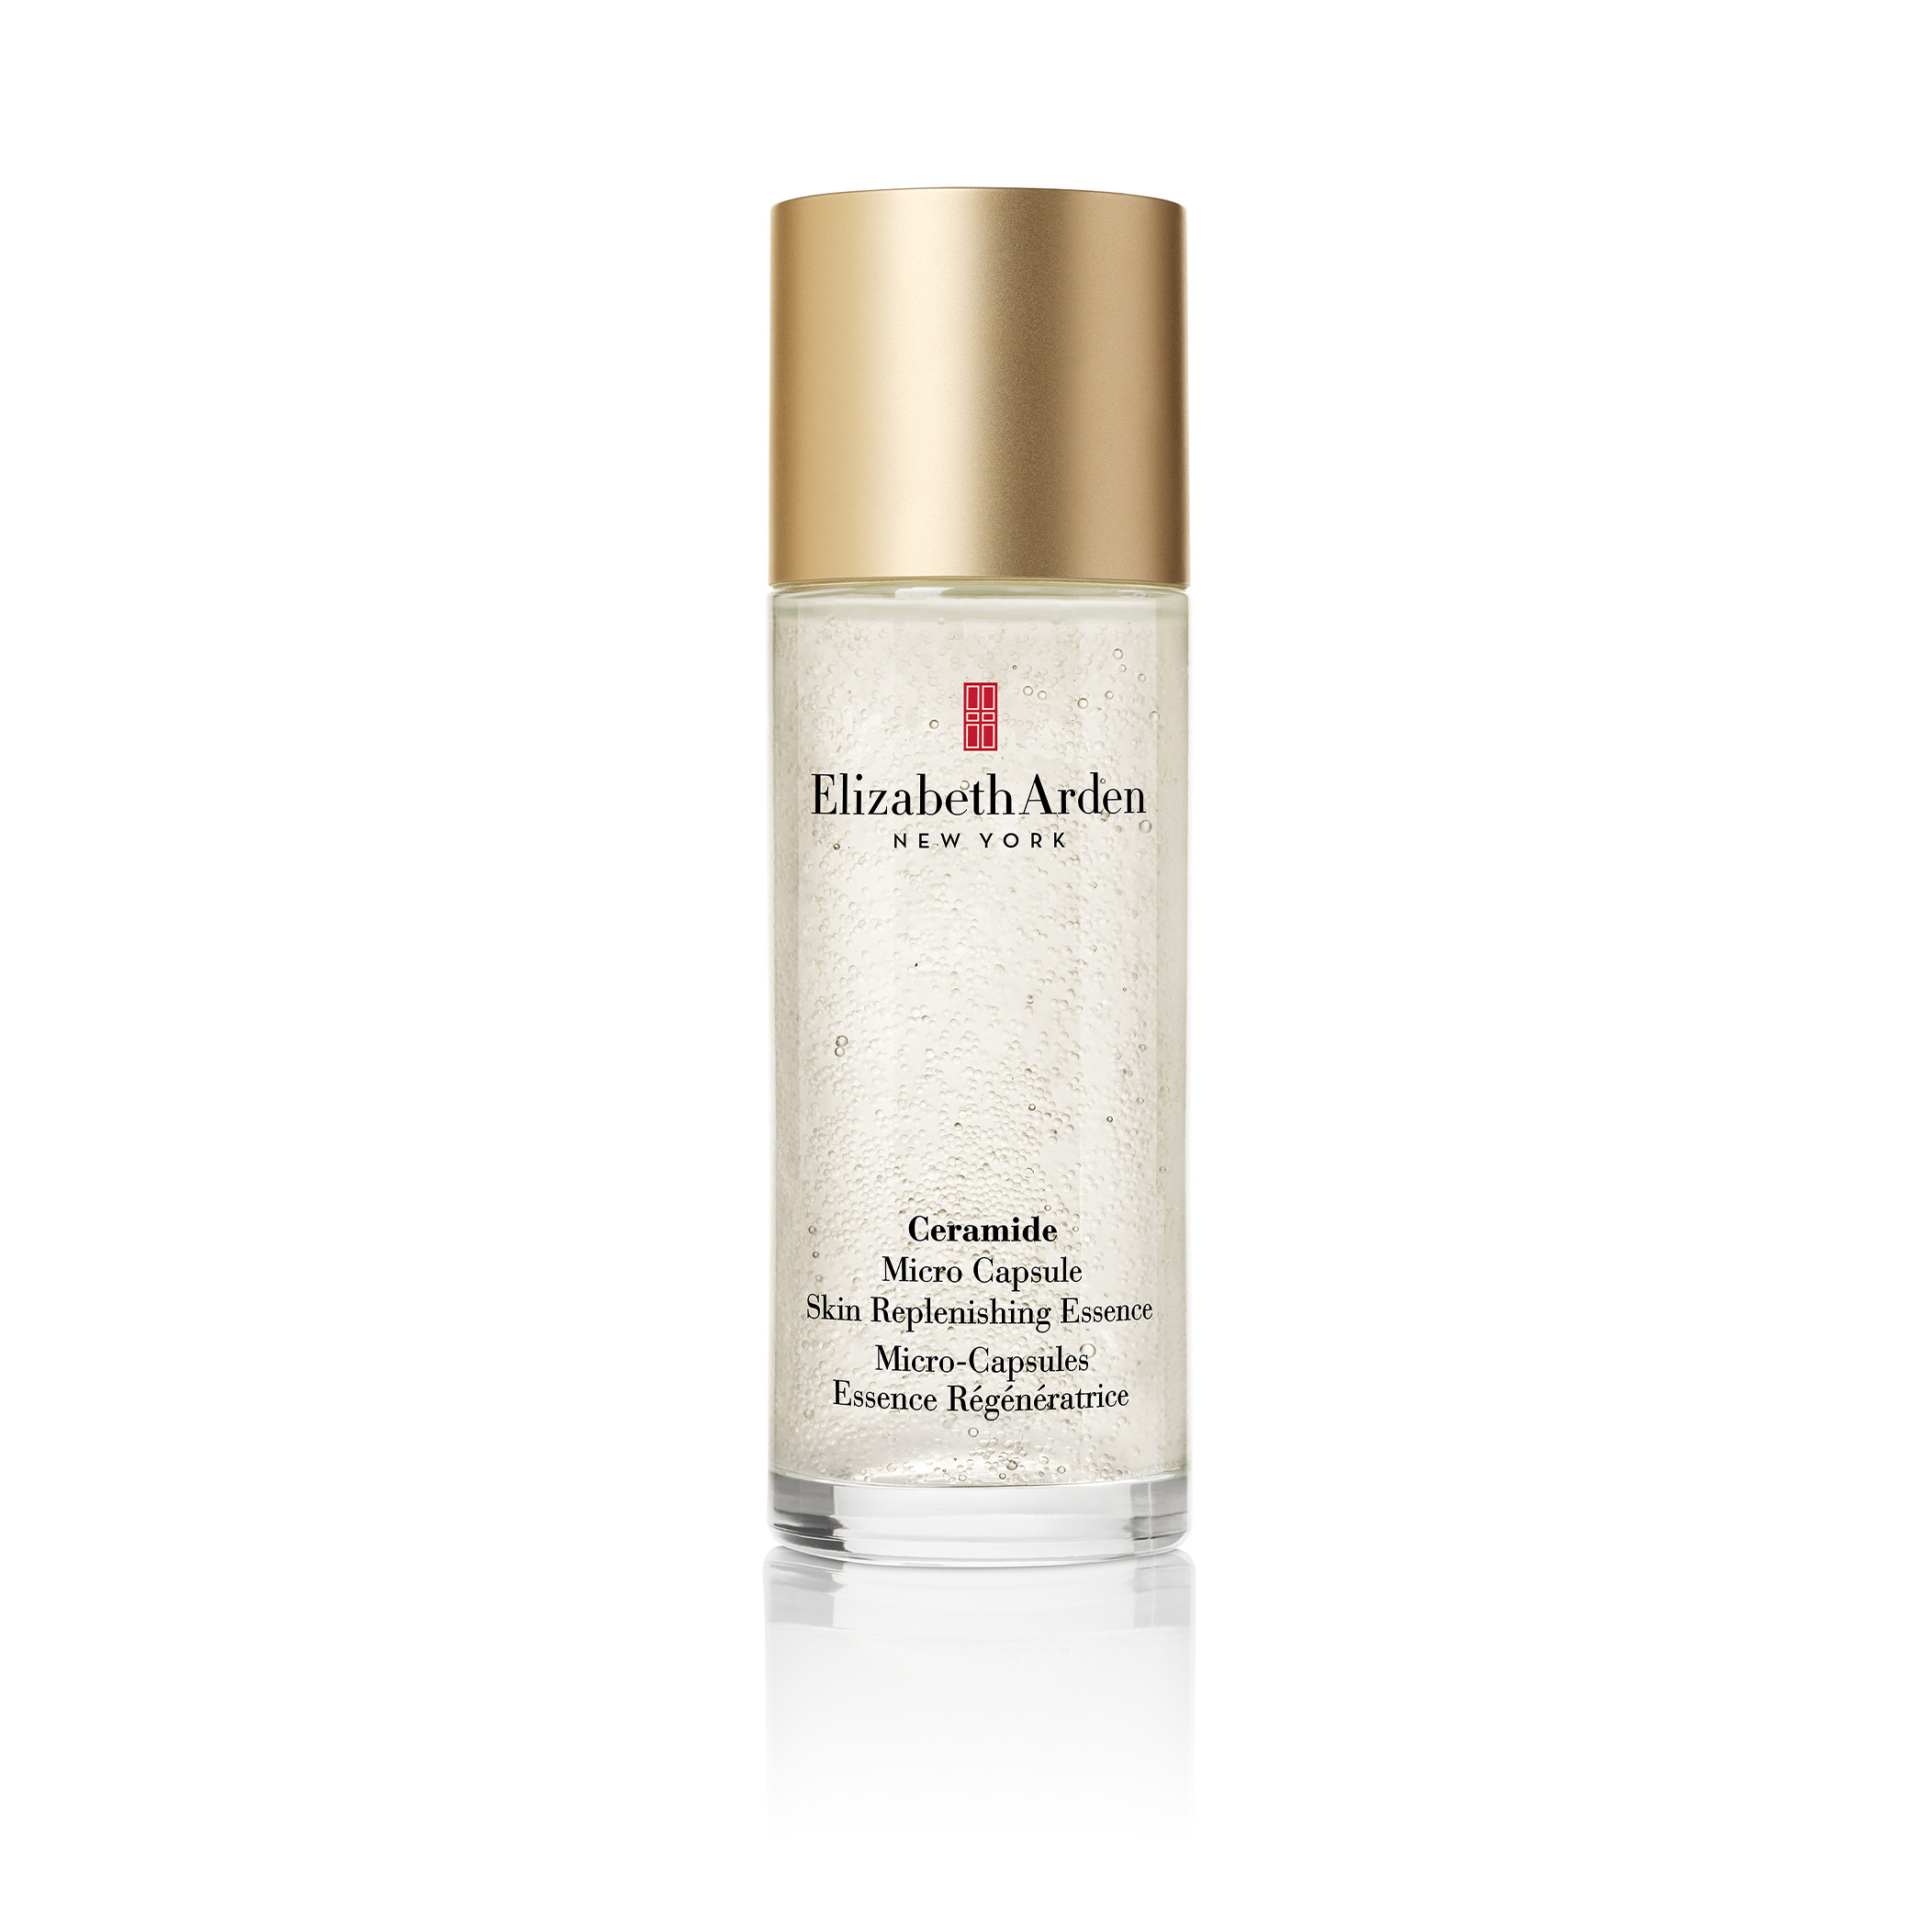 Ceramide Micro Capsule Skin Replenishing Essence - 90ml, , large